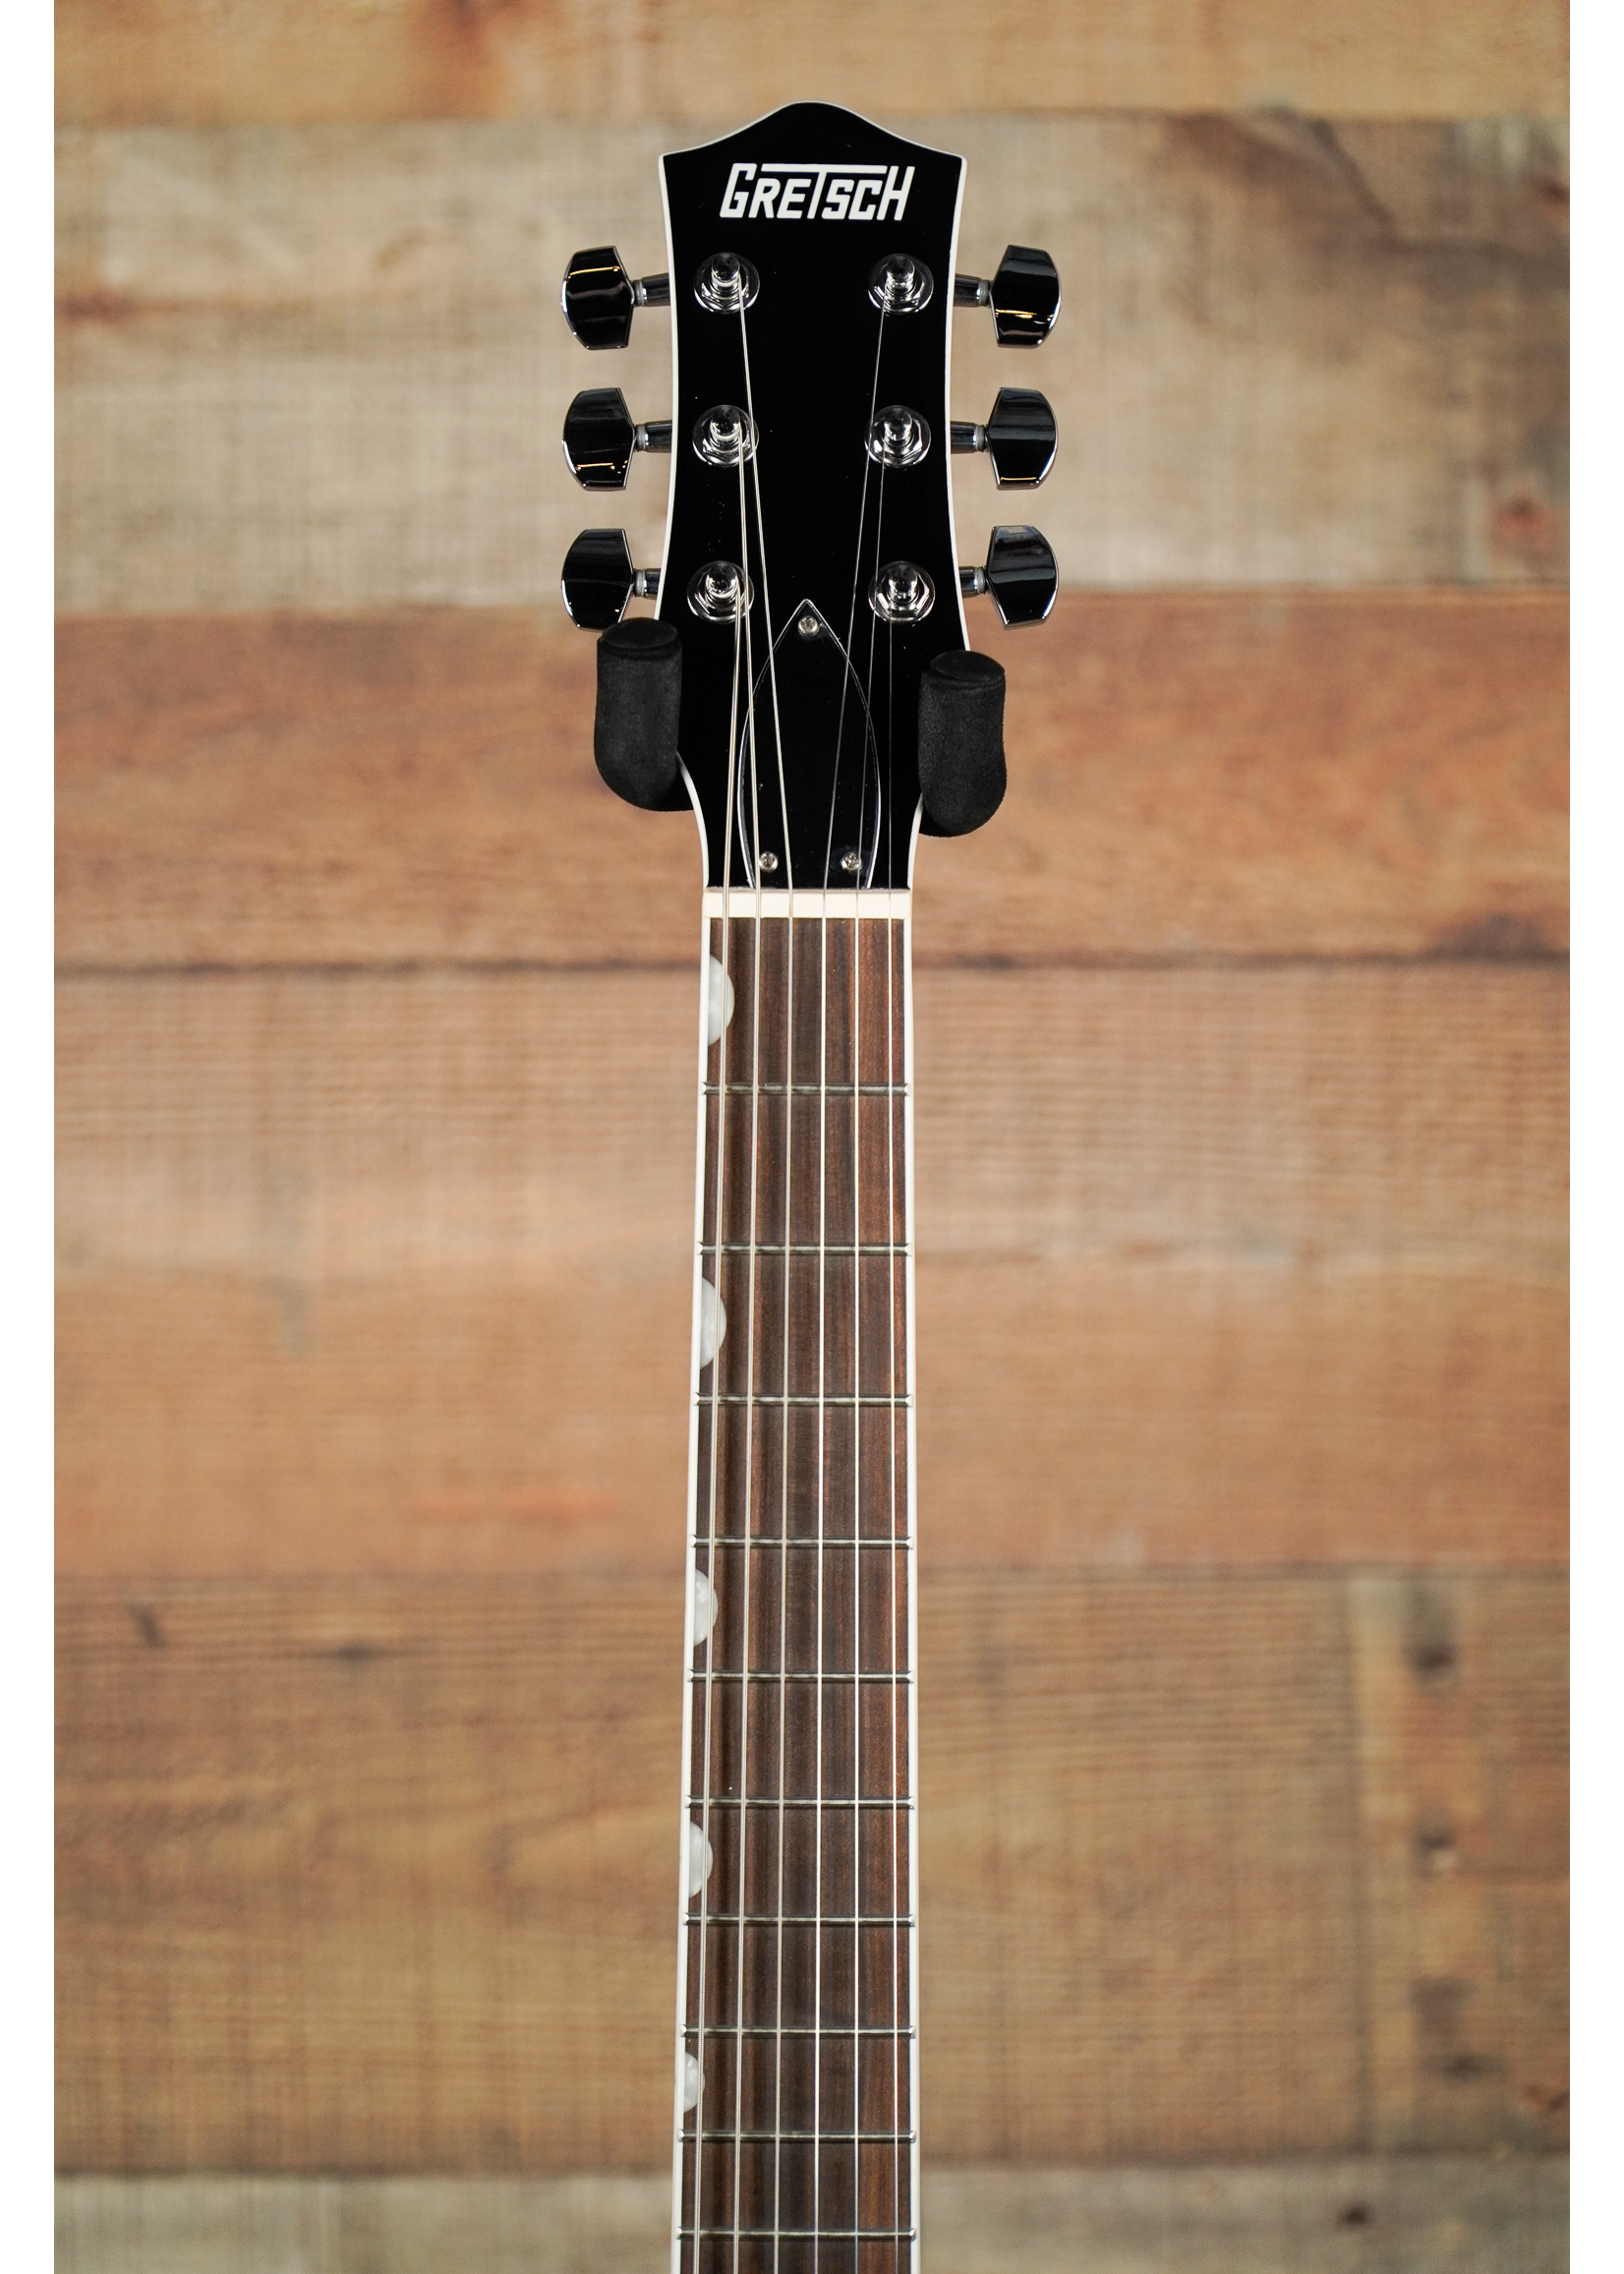 Gretsch Gretsch G5222 Electromatic® Double Jet™ BT with V-Stoptail, Laurel Fingerboard, Aged Natural